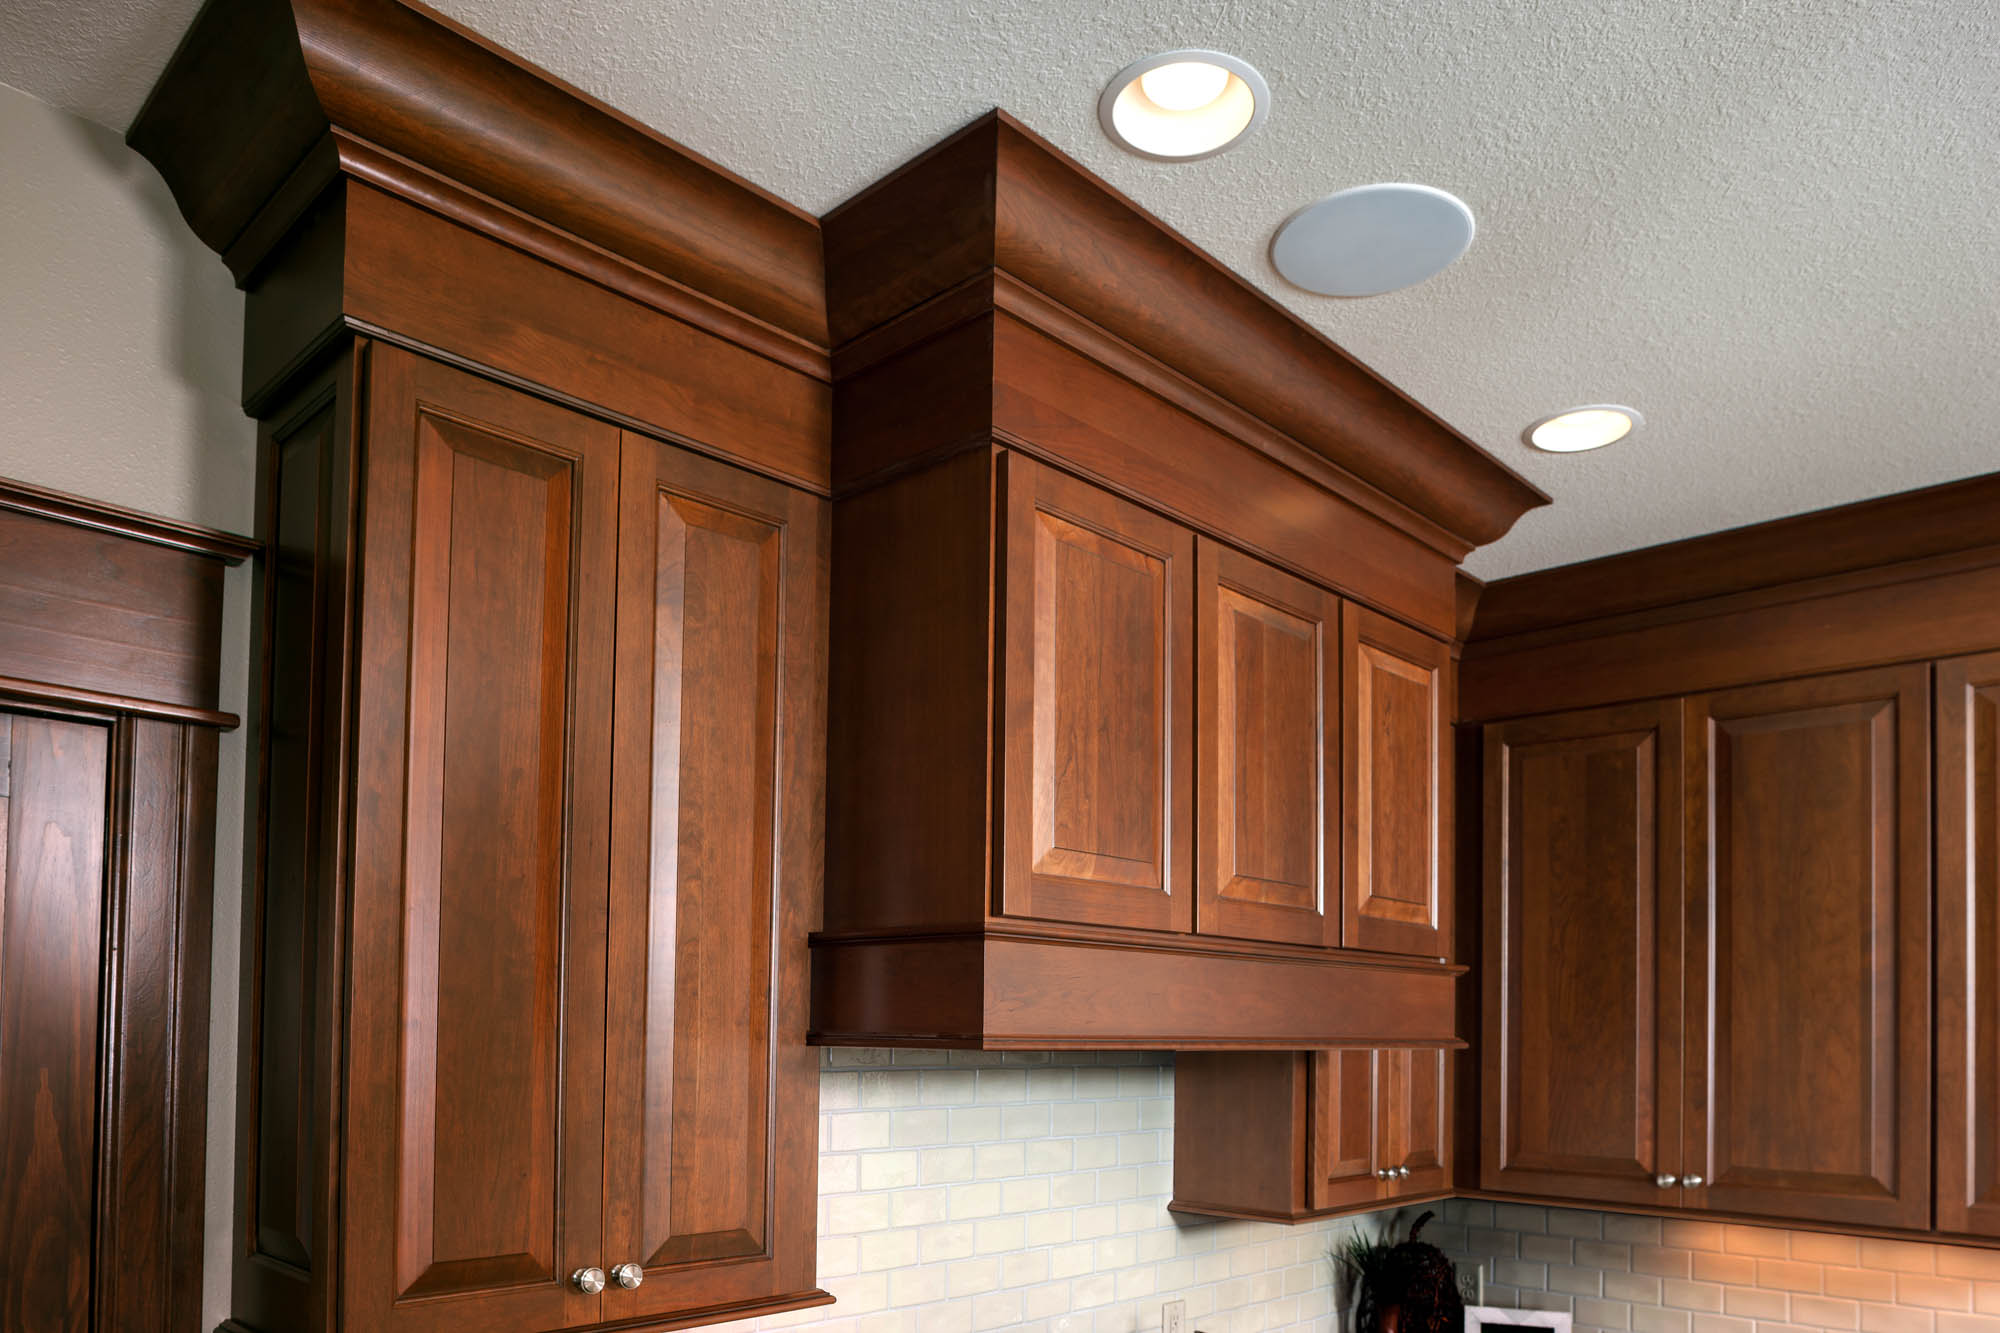 Stained kitchen range hood in Pecan with Ebony Glaze by Showplace Cabinetry & View this welcoming kitchen | Showplace Cabinetry